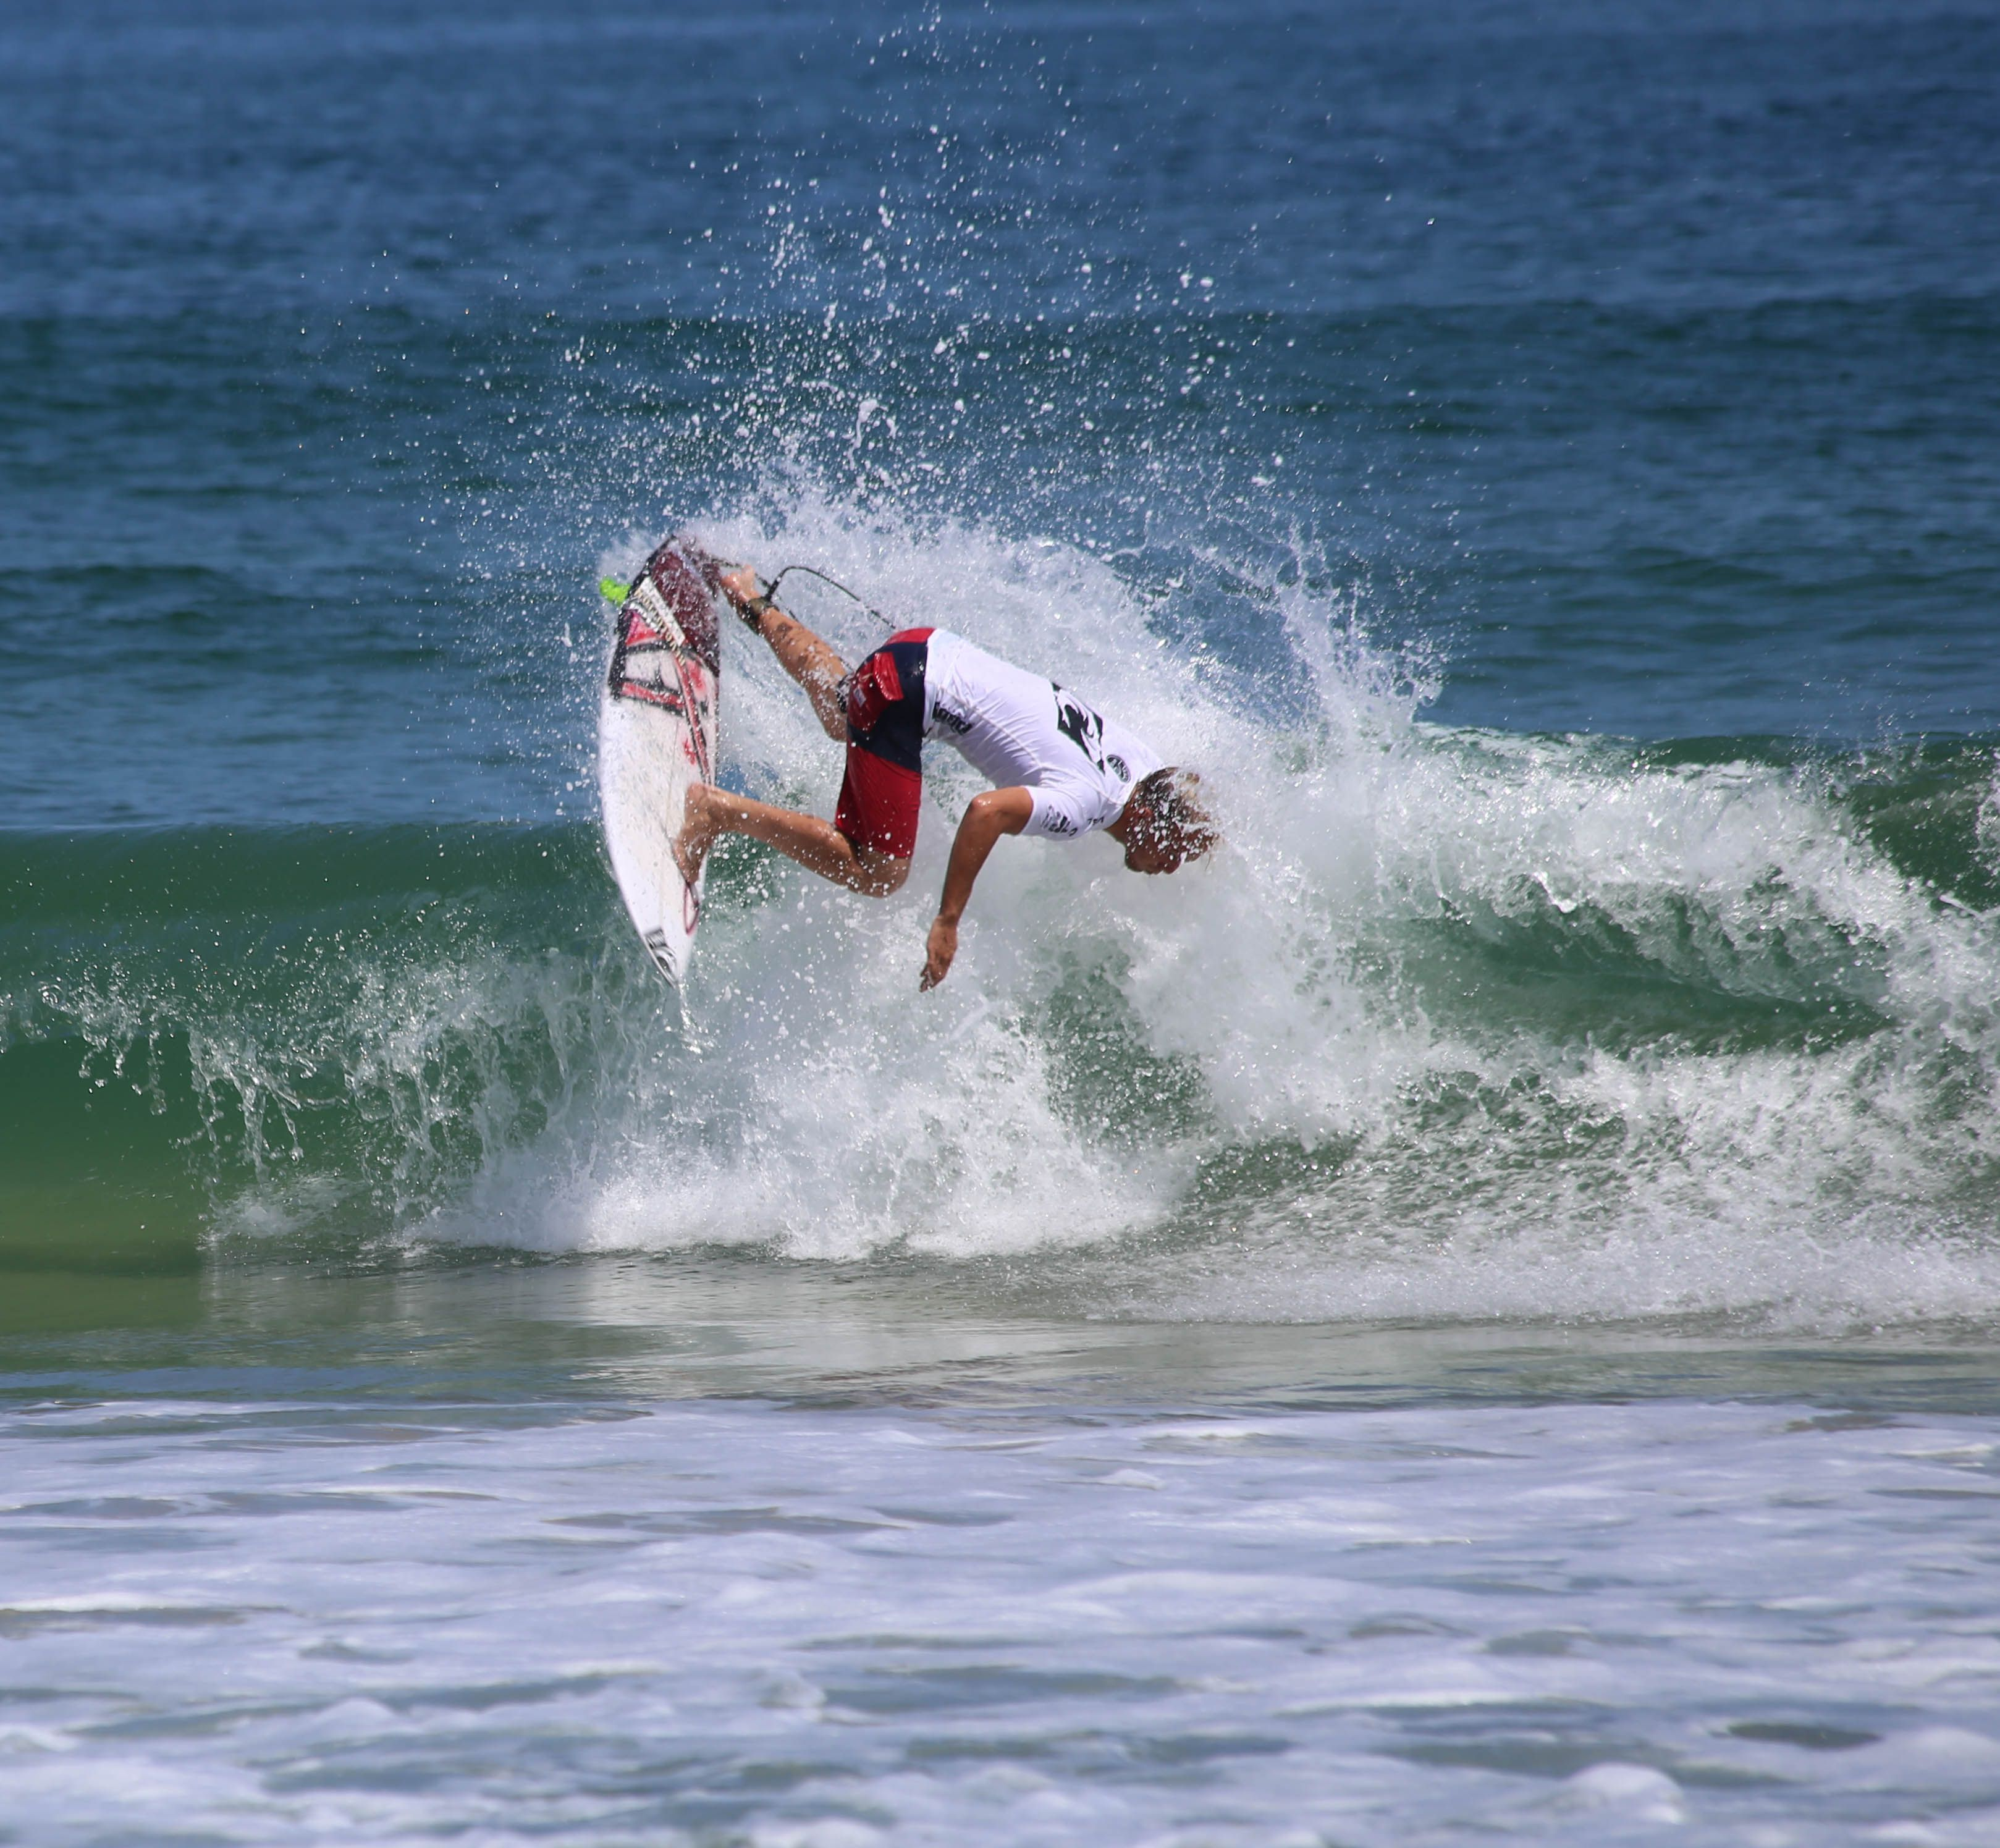 Photos Of The 2016 Outer Banks Pro Surf Competition Surf Surfing Competition Outerbanks Obx Obxpro Surf Competition Surfing Outer Banks Nc